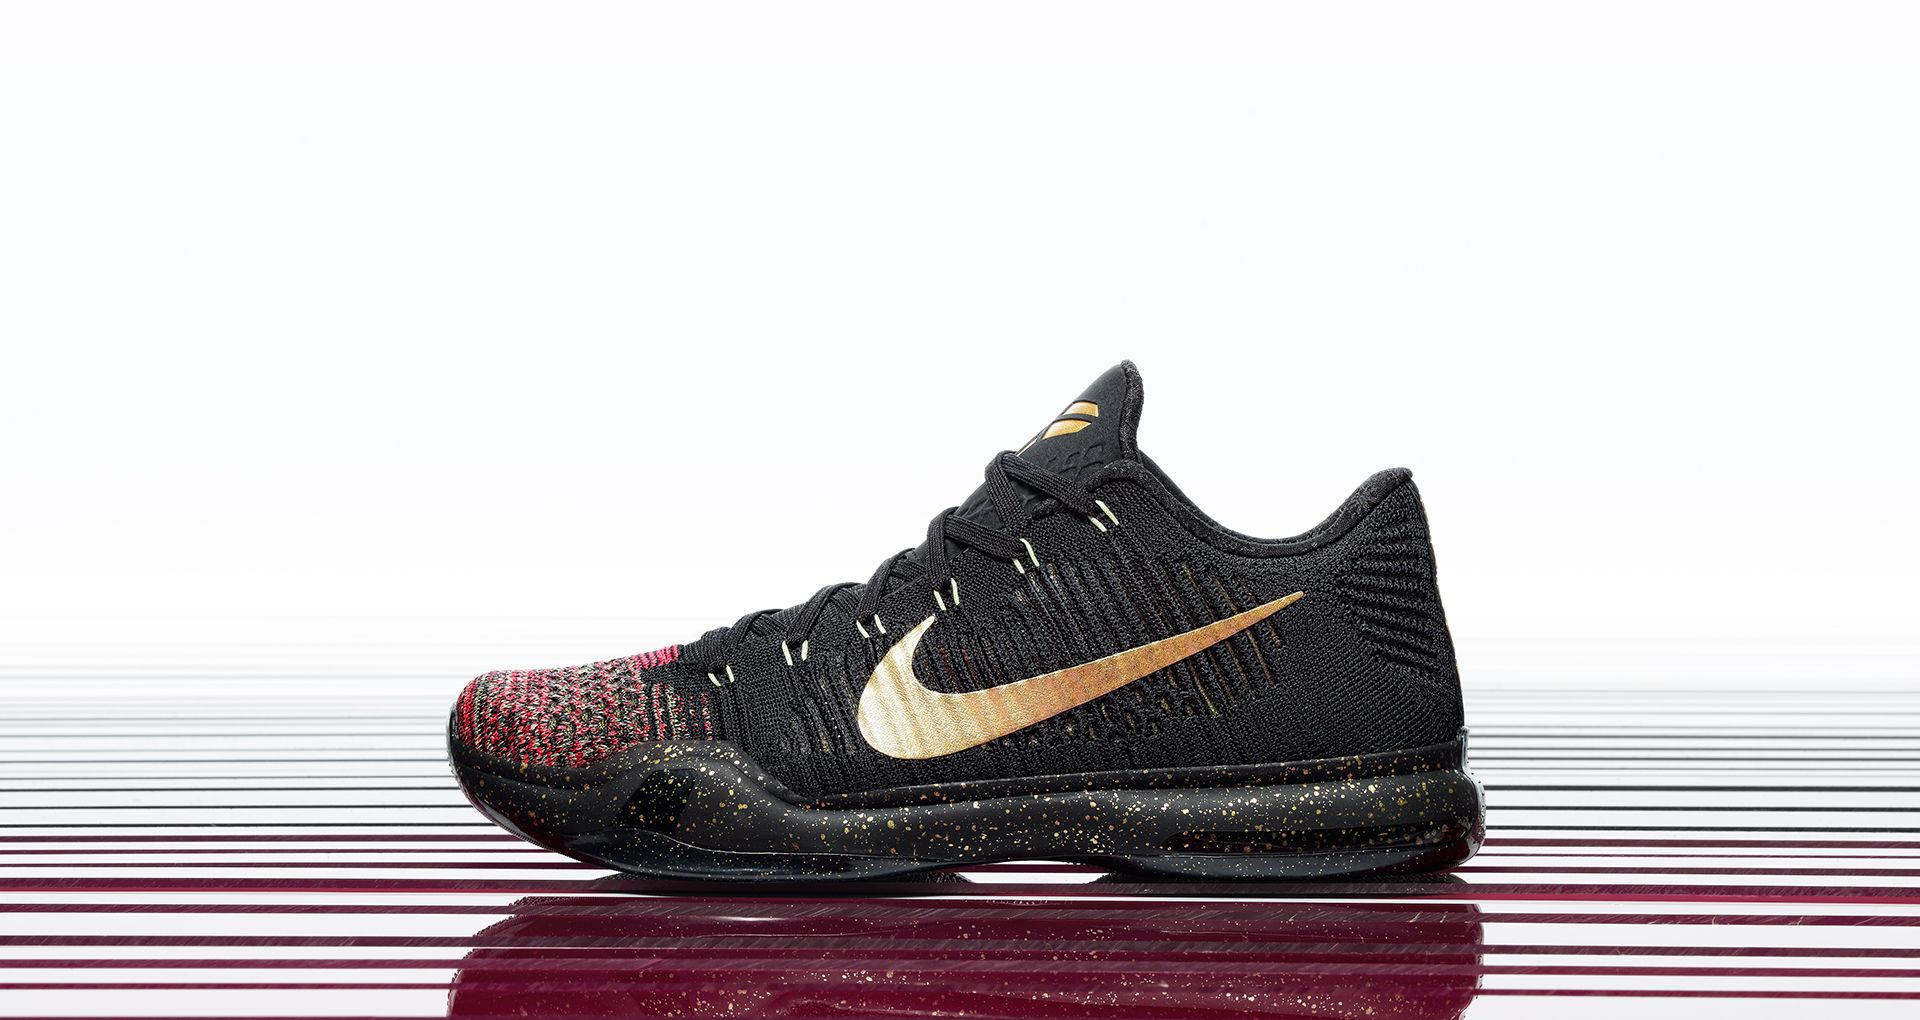 reputable site 7b962 bd097 Shop all Nike Soccer. KOBE X ELITE LOW